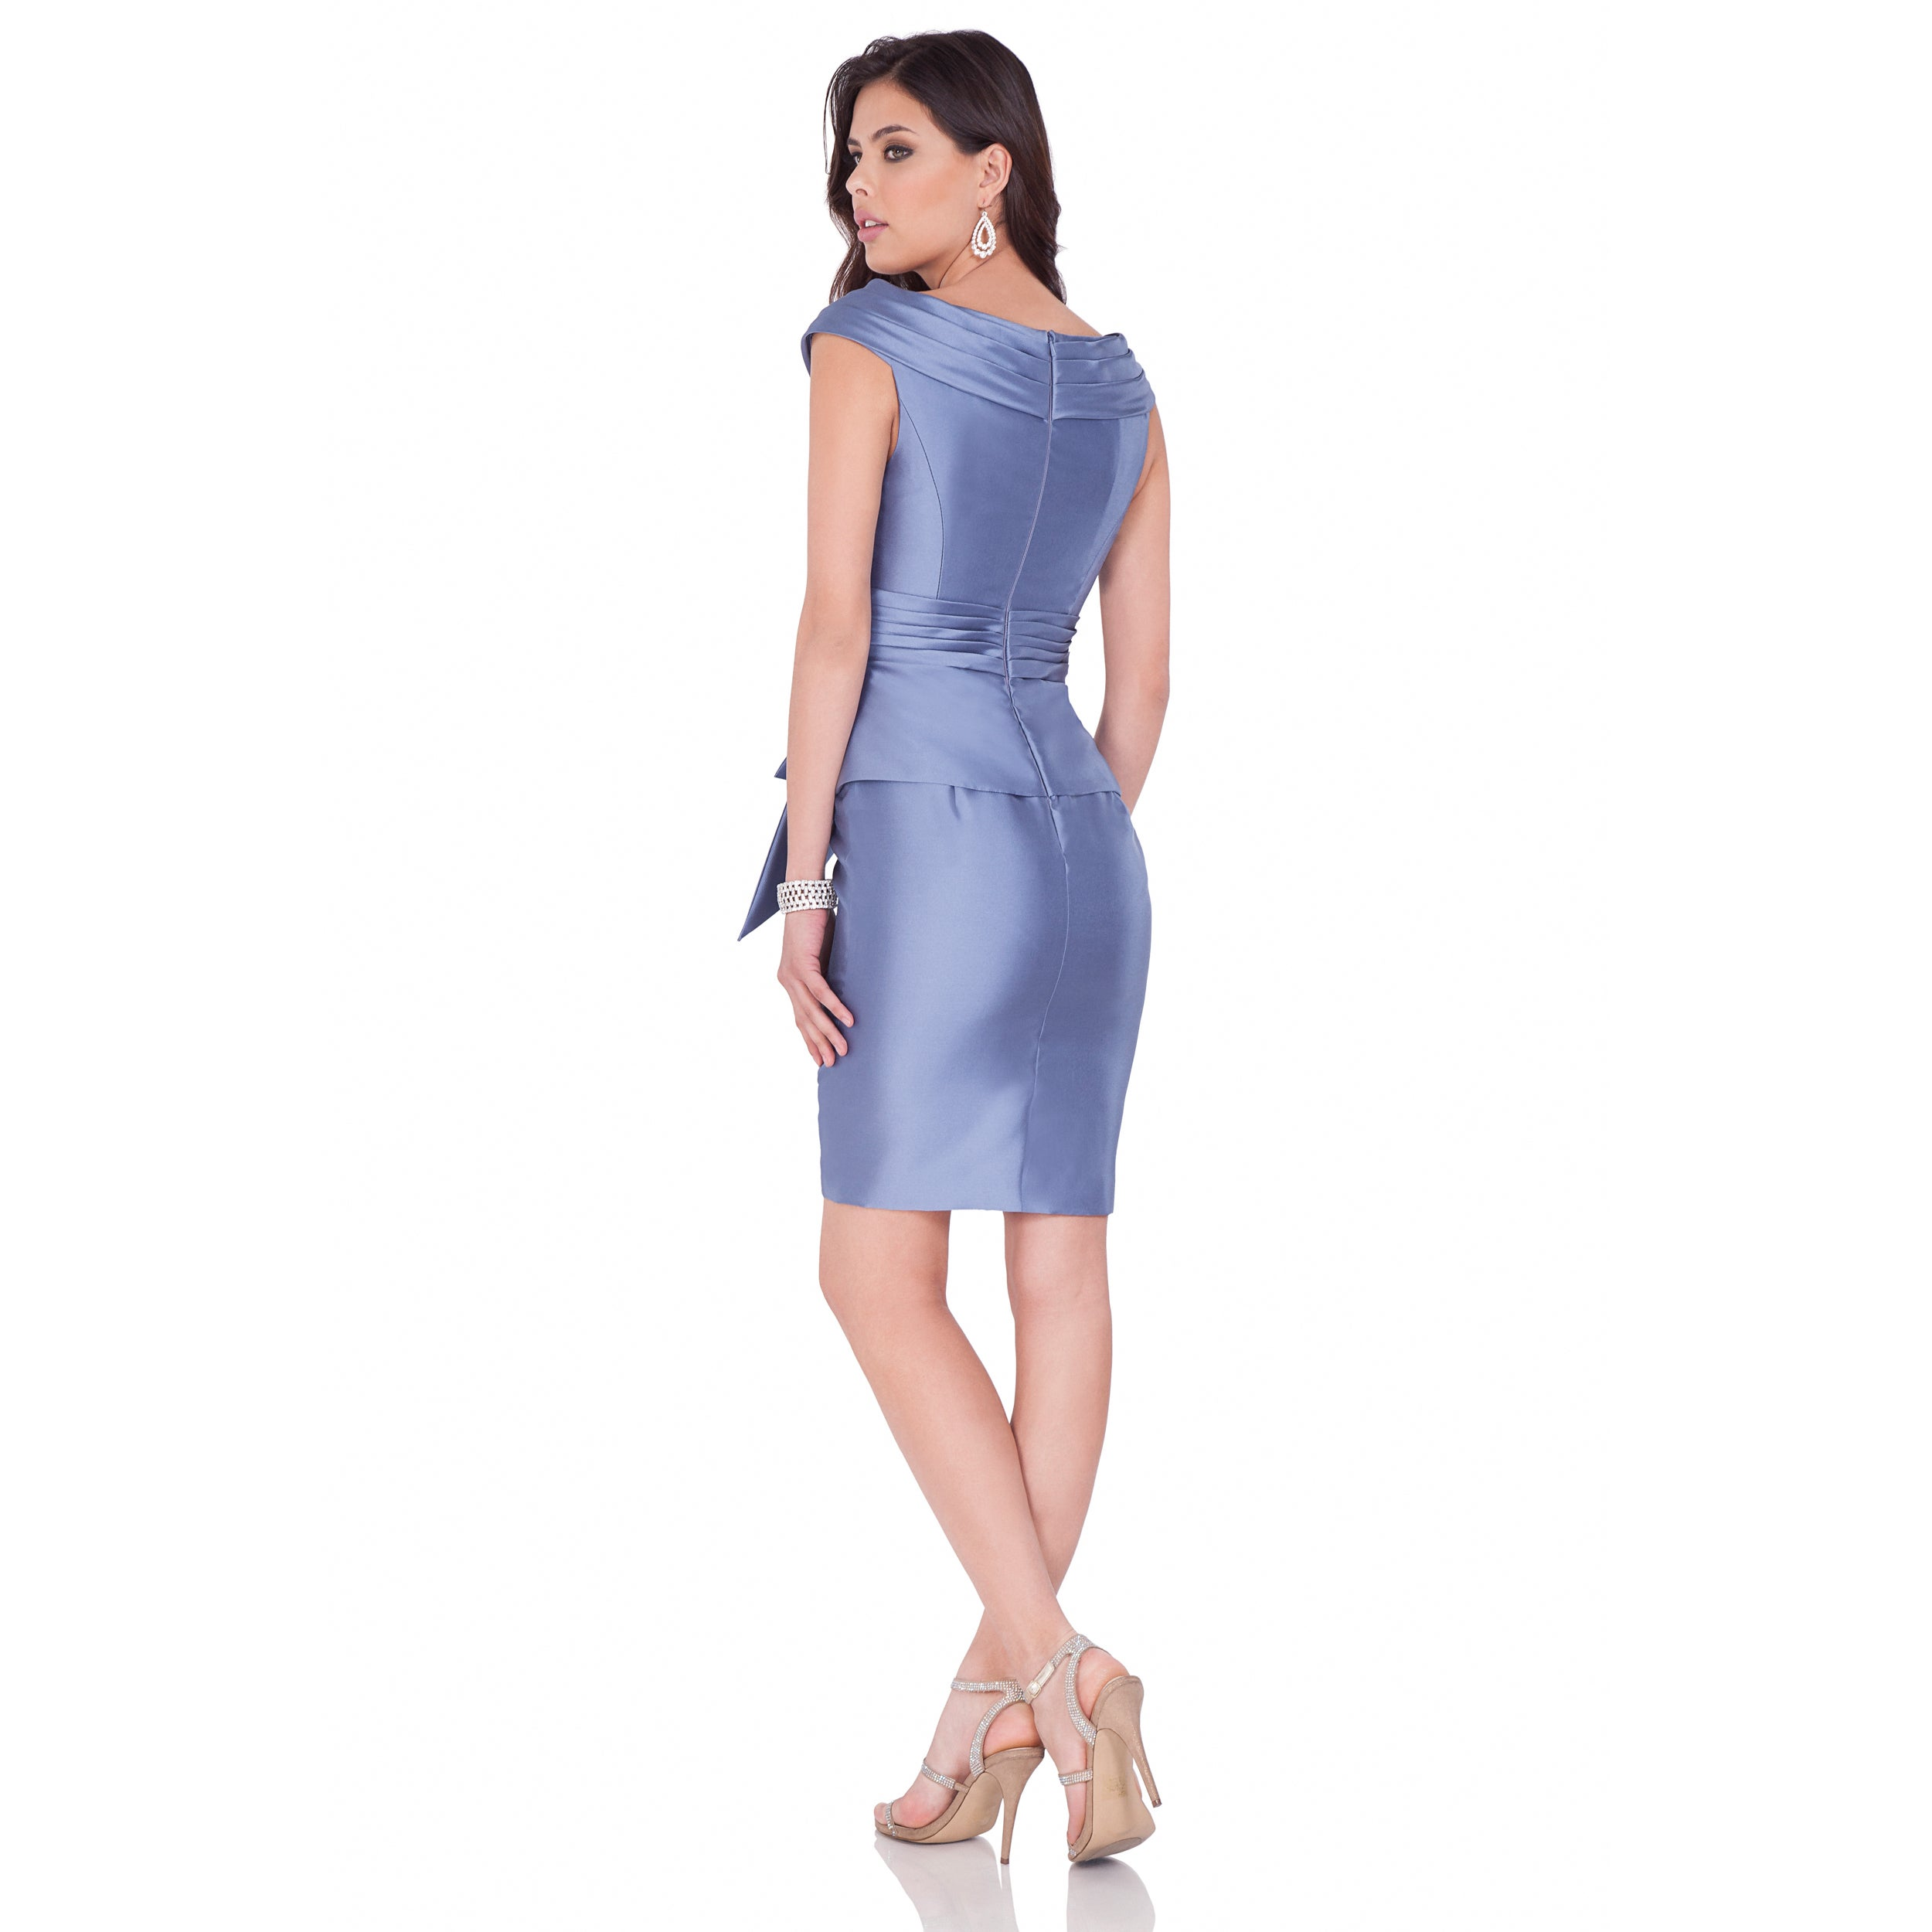 c36491d5d17 Shop Terani Couture Mikado Short Cocktail Dress with Deep-V Neckline - Free  Shipping Today - Overstock - 15126688